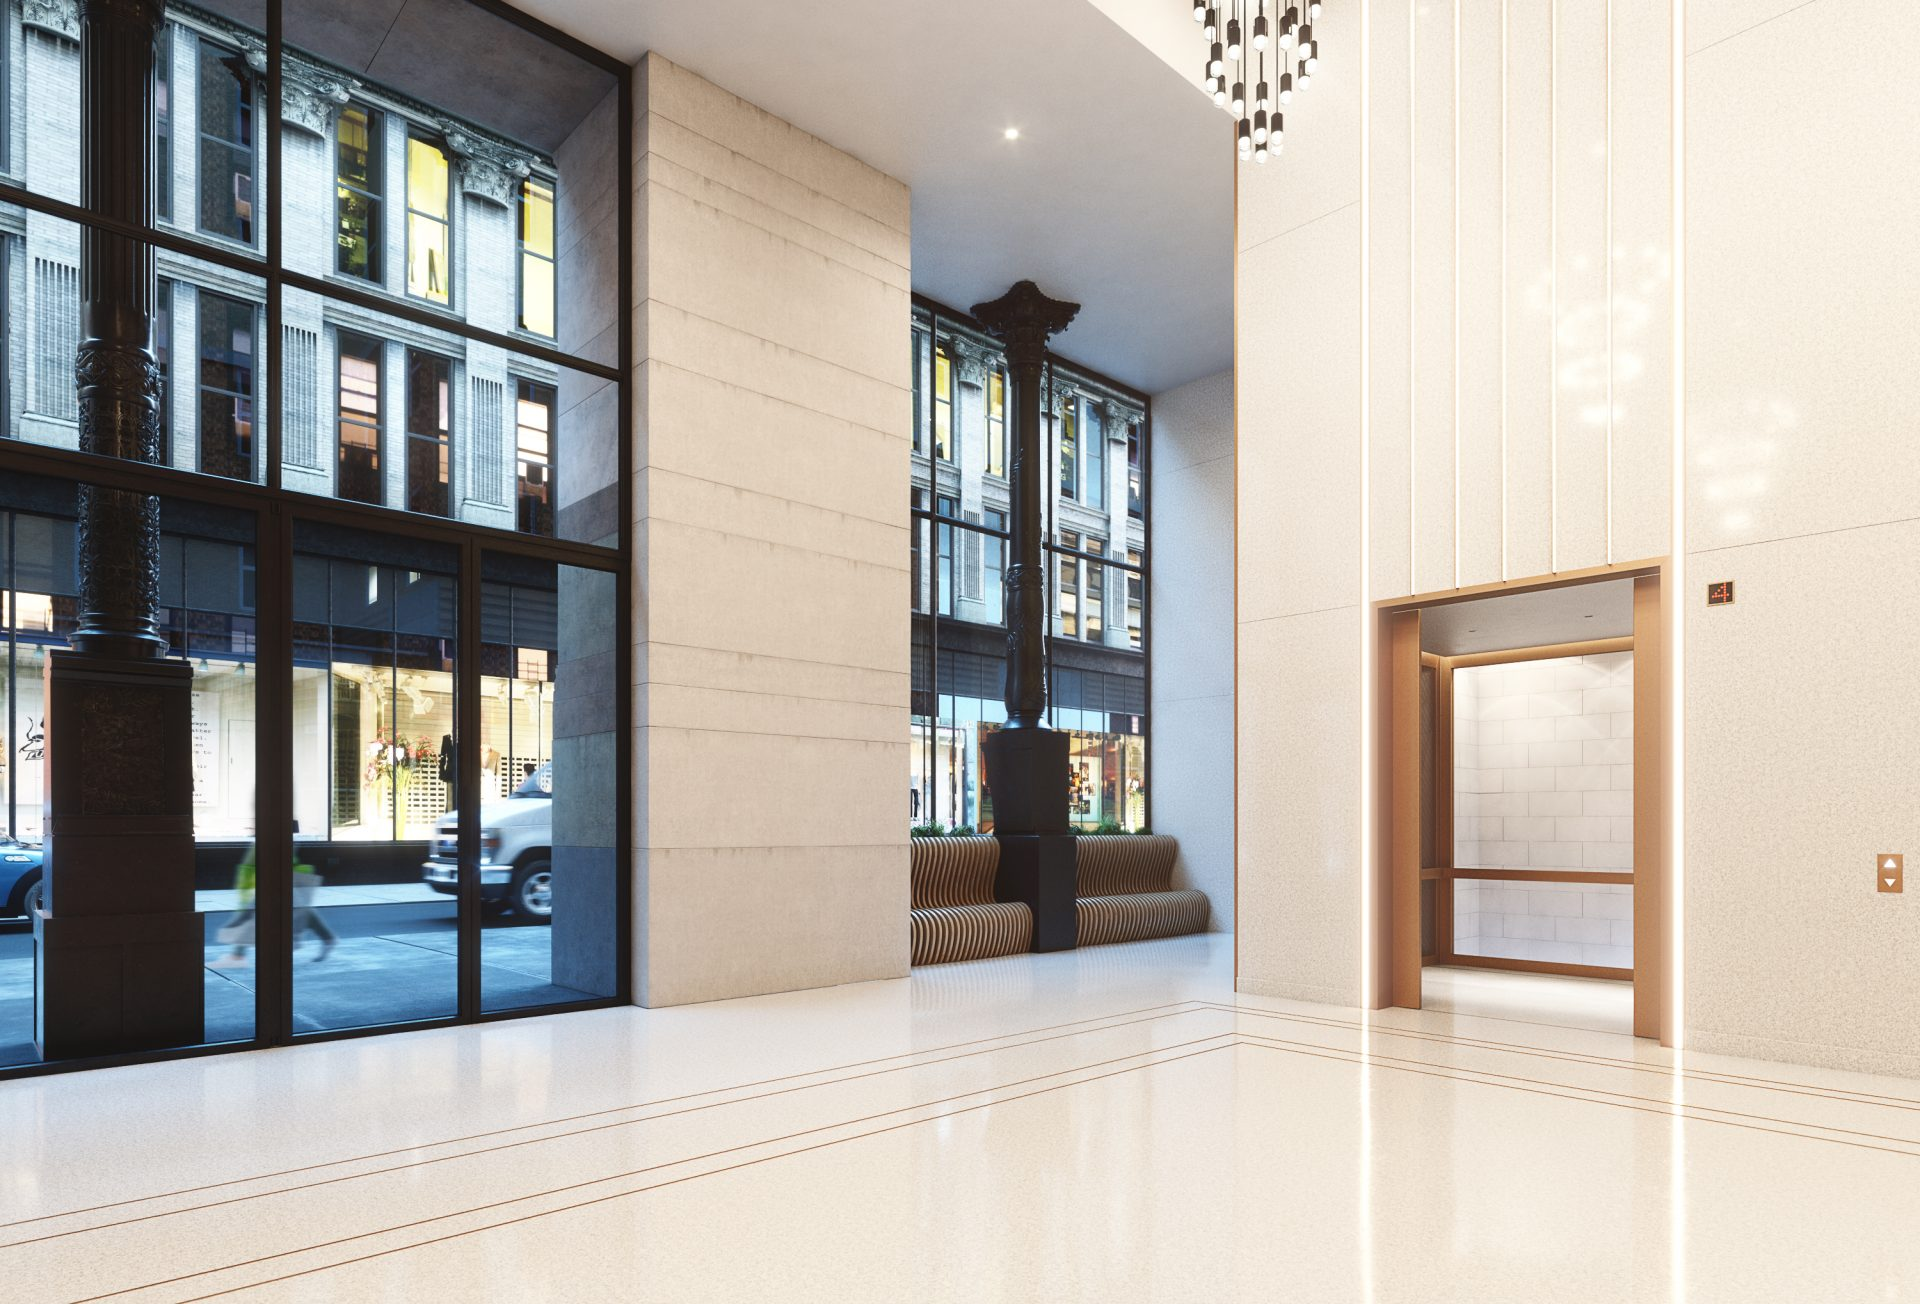 Lobby rendering looking out toward street at 888 Broadway